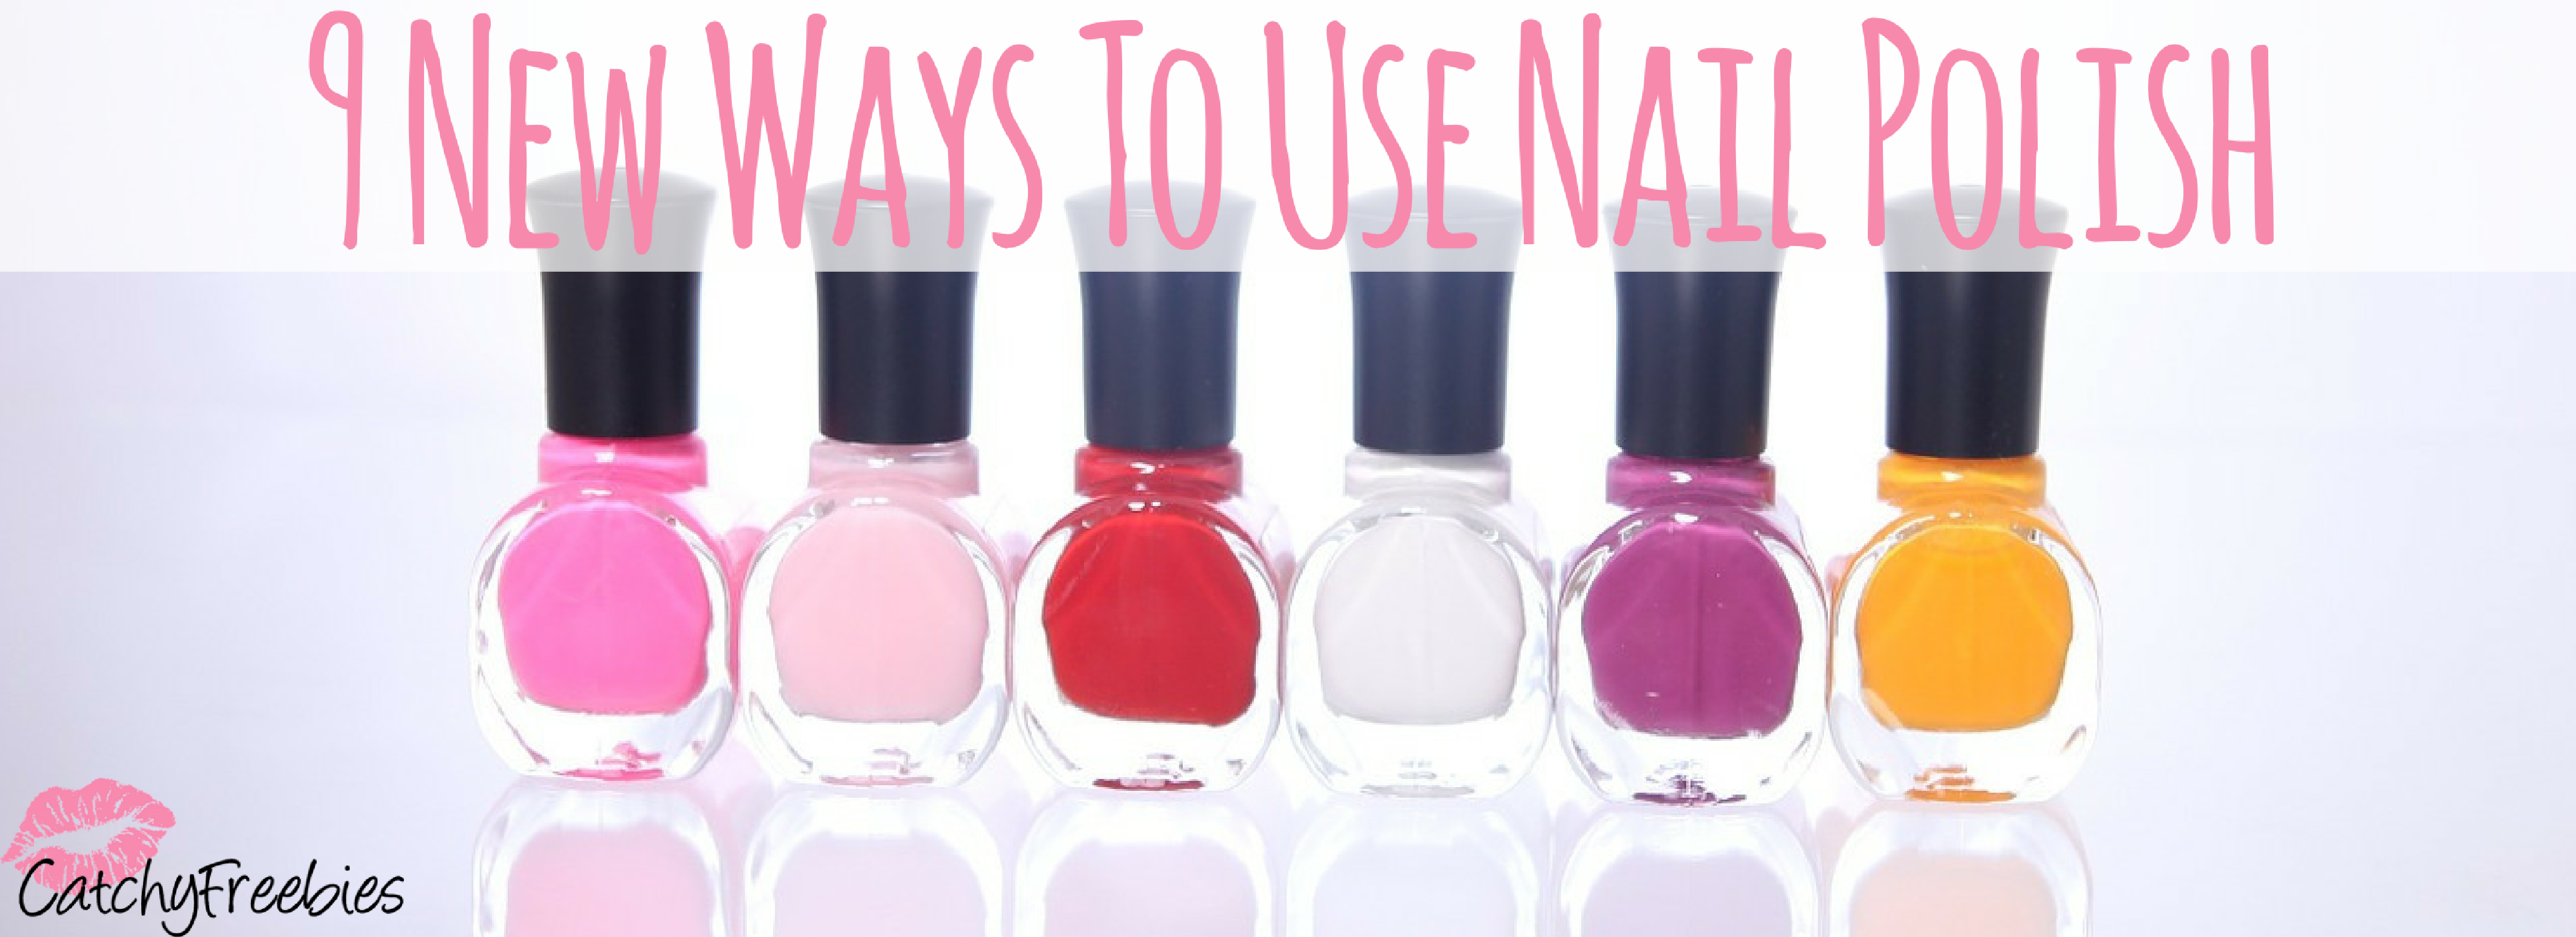 9 New Ways To Use Nail Polish